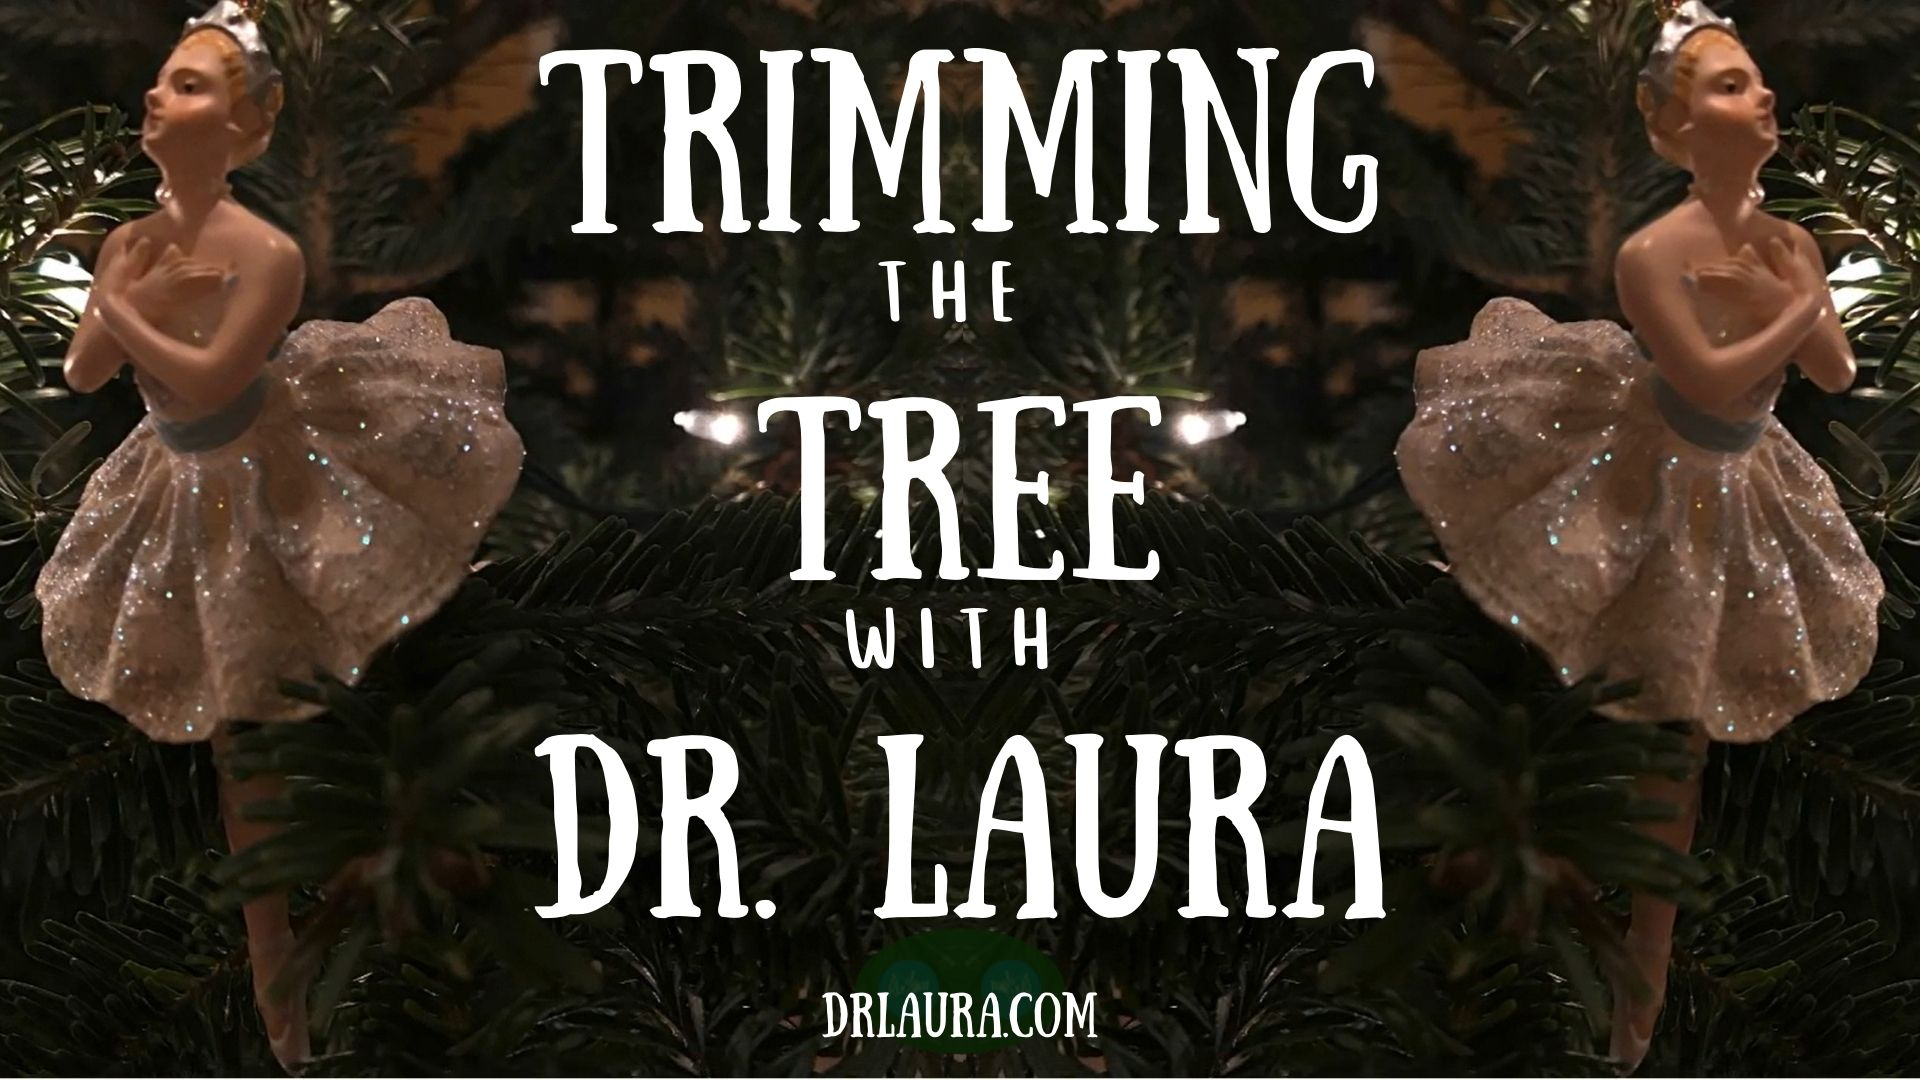 YouTube: Trimming the Tree with Dr. Laura